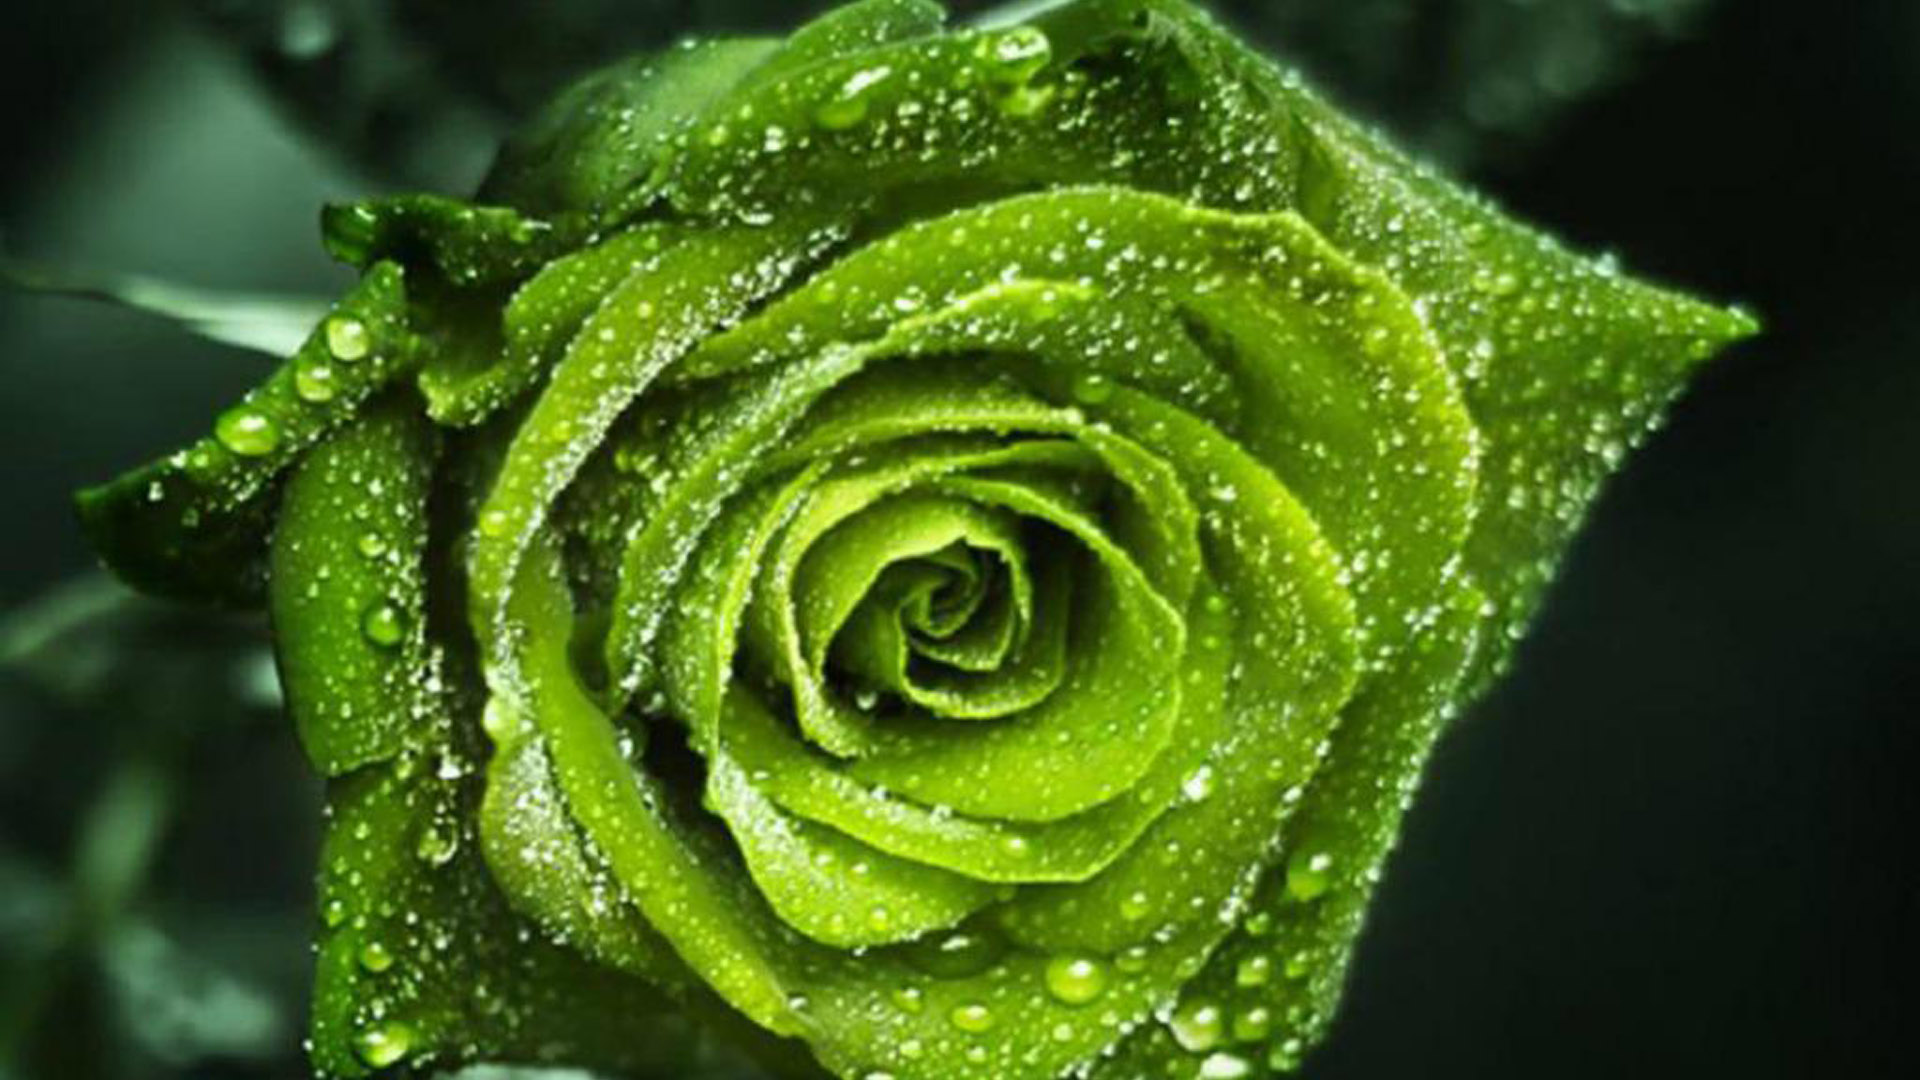 Wallpaper rose flowers wallpapers for free download about (, 1920x1080